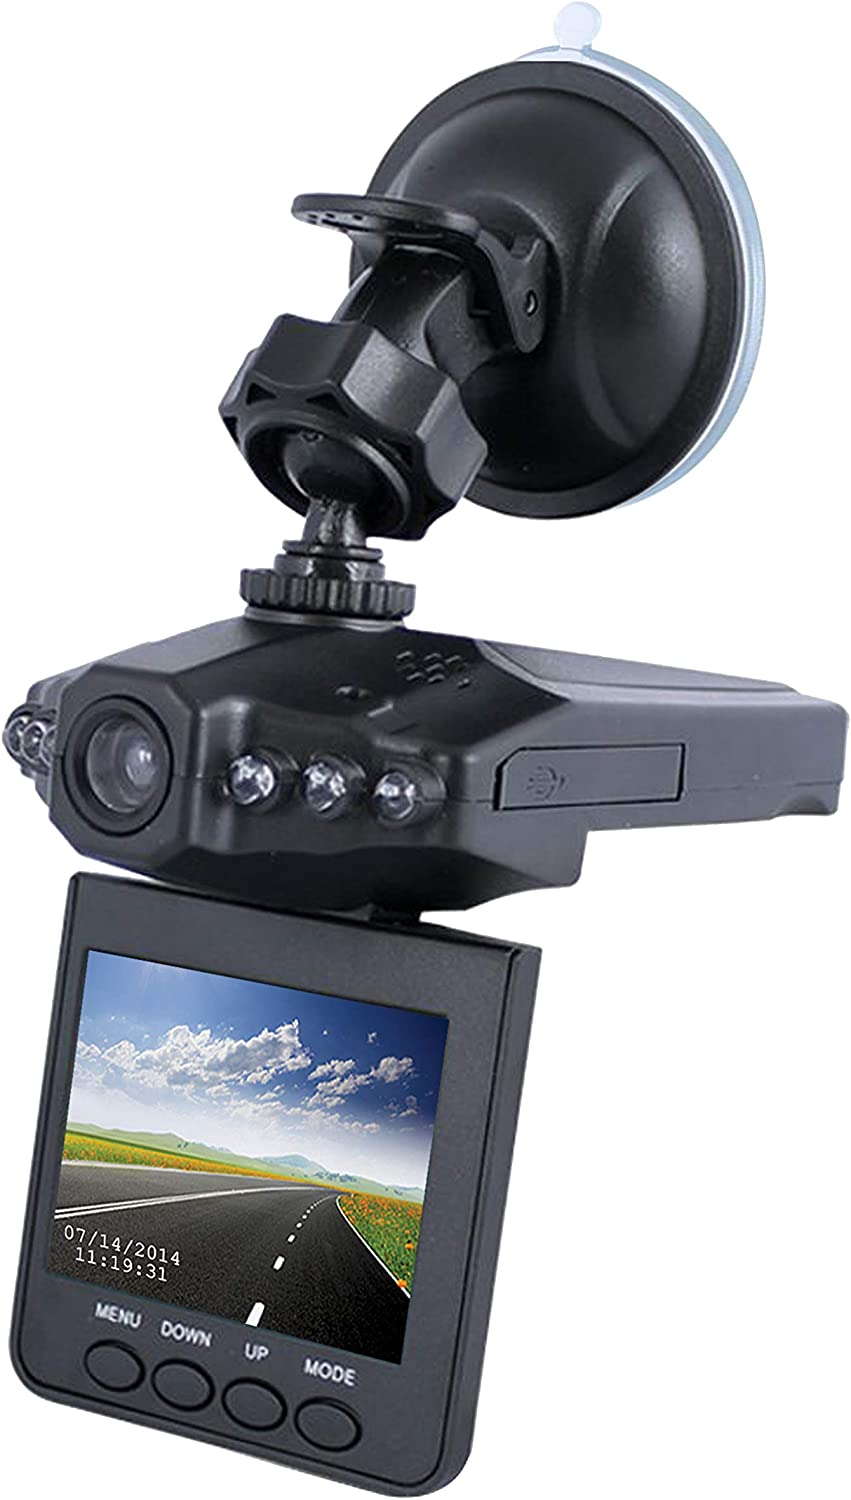 "DashCam Pro - As Seen on TV Dash Cam 360°, Motion Detection, 2.5"" LCD, 720P HD, Dashboard Camera Video Recorder,..."